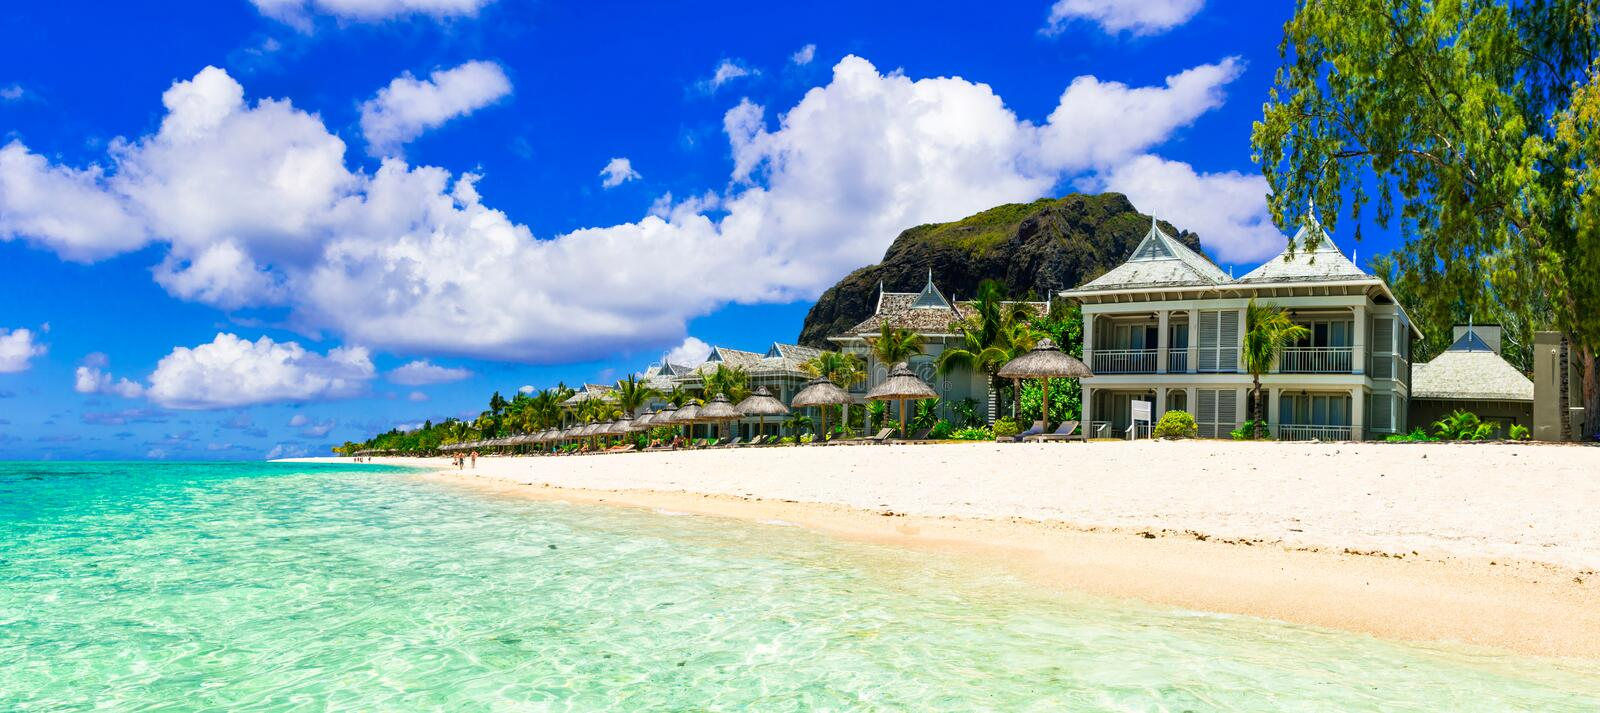 Luxury vacation in tropical resort. Mauritius island. stock photo